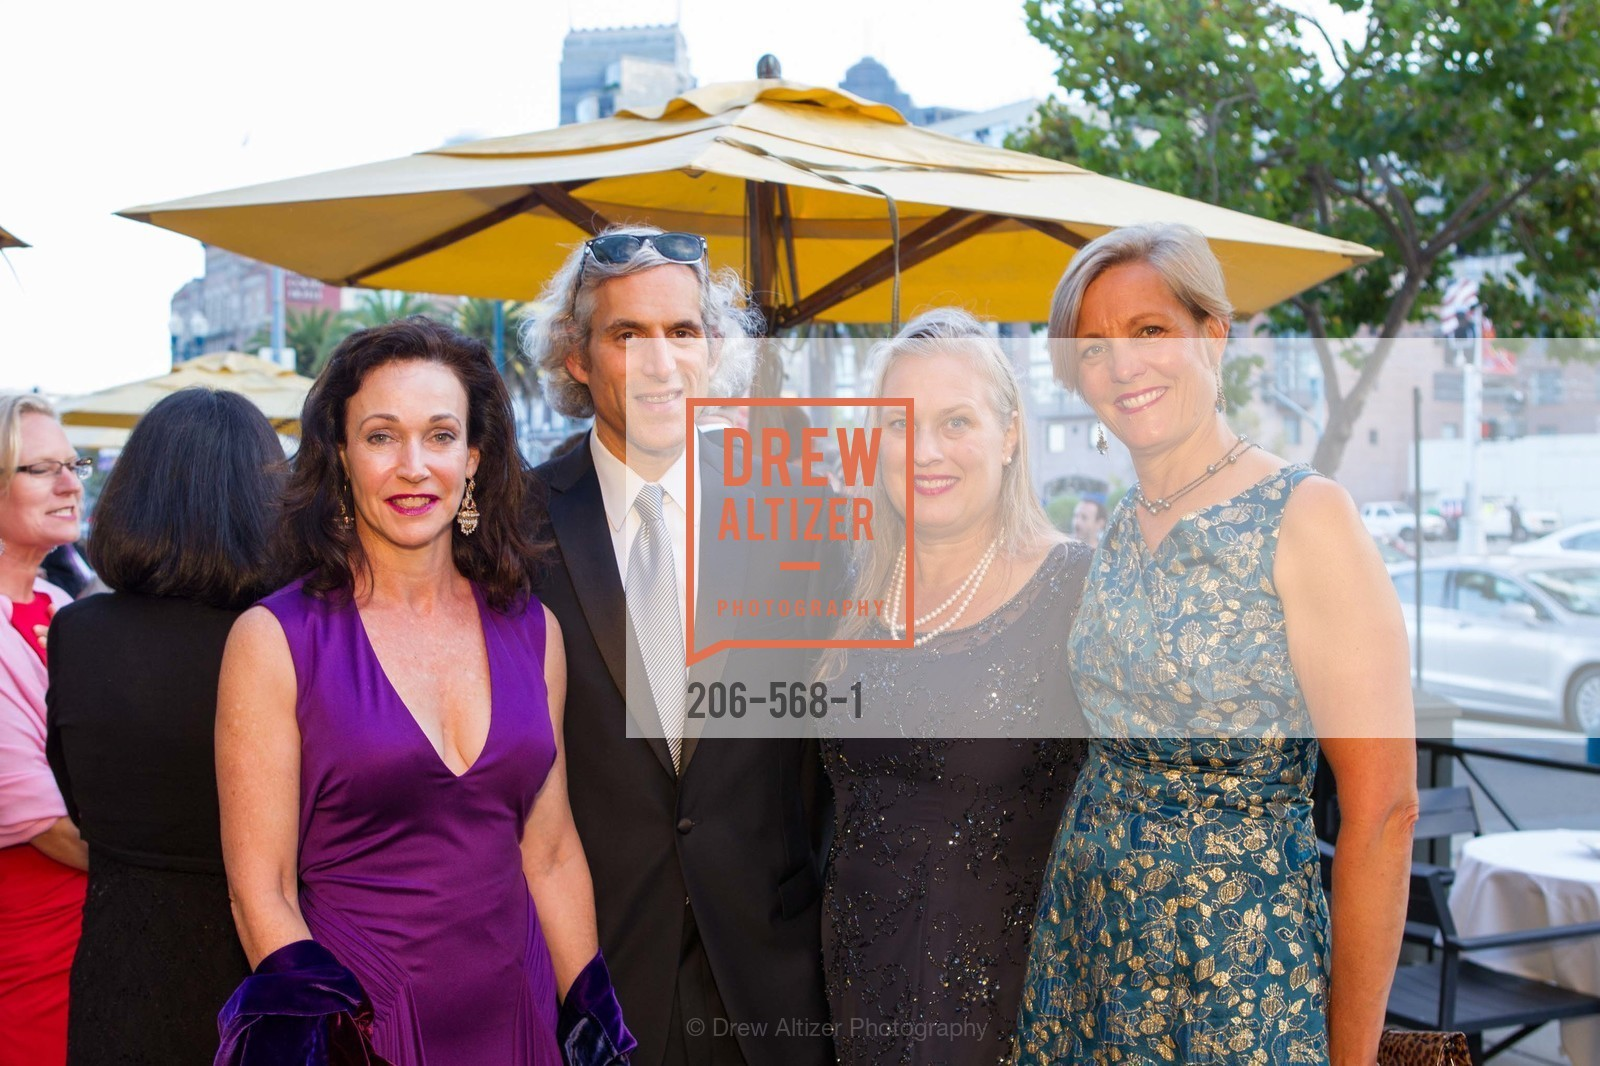 Jennifer Rowland, David Kauffman, Cybil Kauffman, Roxanne Richards, SOTHEBY'S  Hosts a Private Viewing of Highlights from the Collection of MRS. PAUL MELLON, US, September 17th, 2014,Drew Altizer, Drew Altizer Photography, full-service agency, private events, San Francisco photographer, photographer california